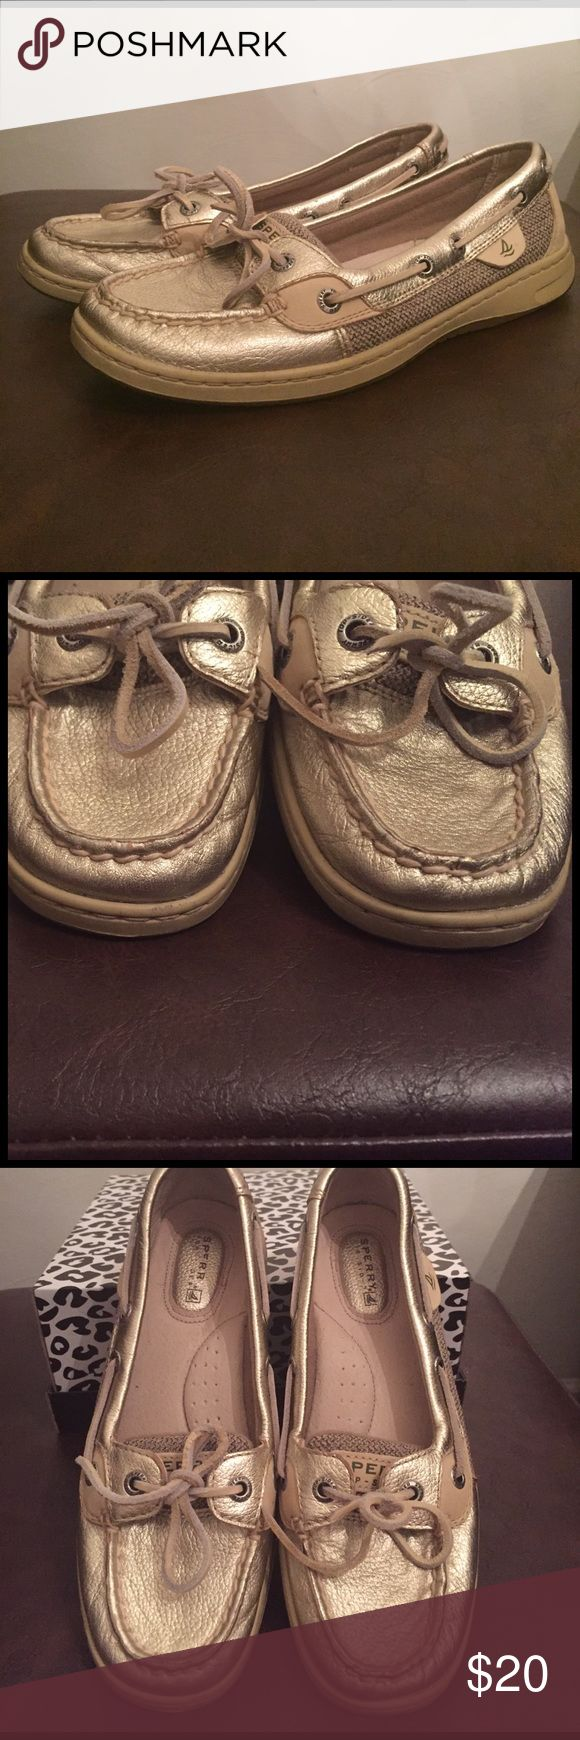 Sperry Top-Sider gold metallic angelfish Lightly worn gold metallic sperry angelfish size 6.5 Sperry Top-Sider Shoes Flats & Loafers